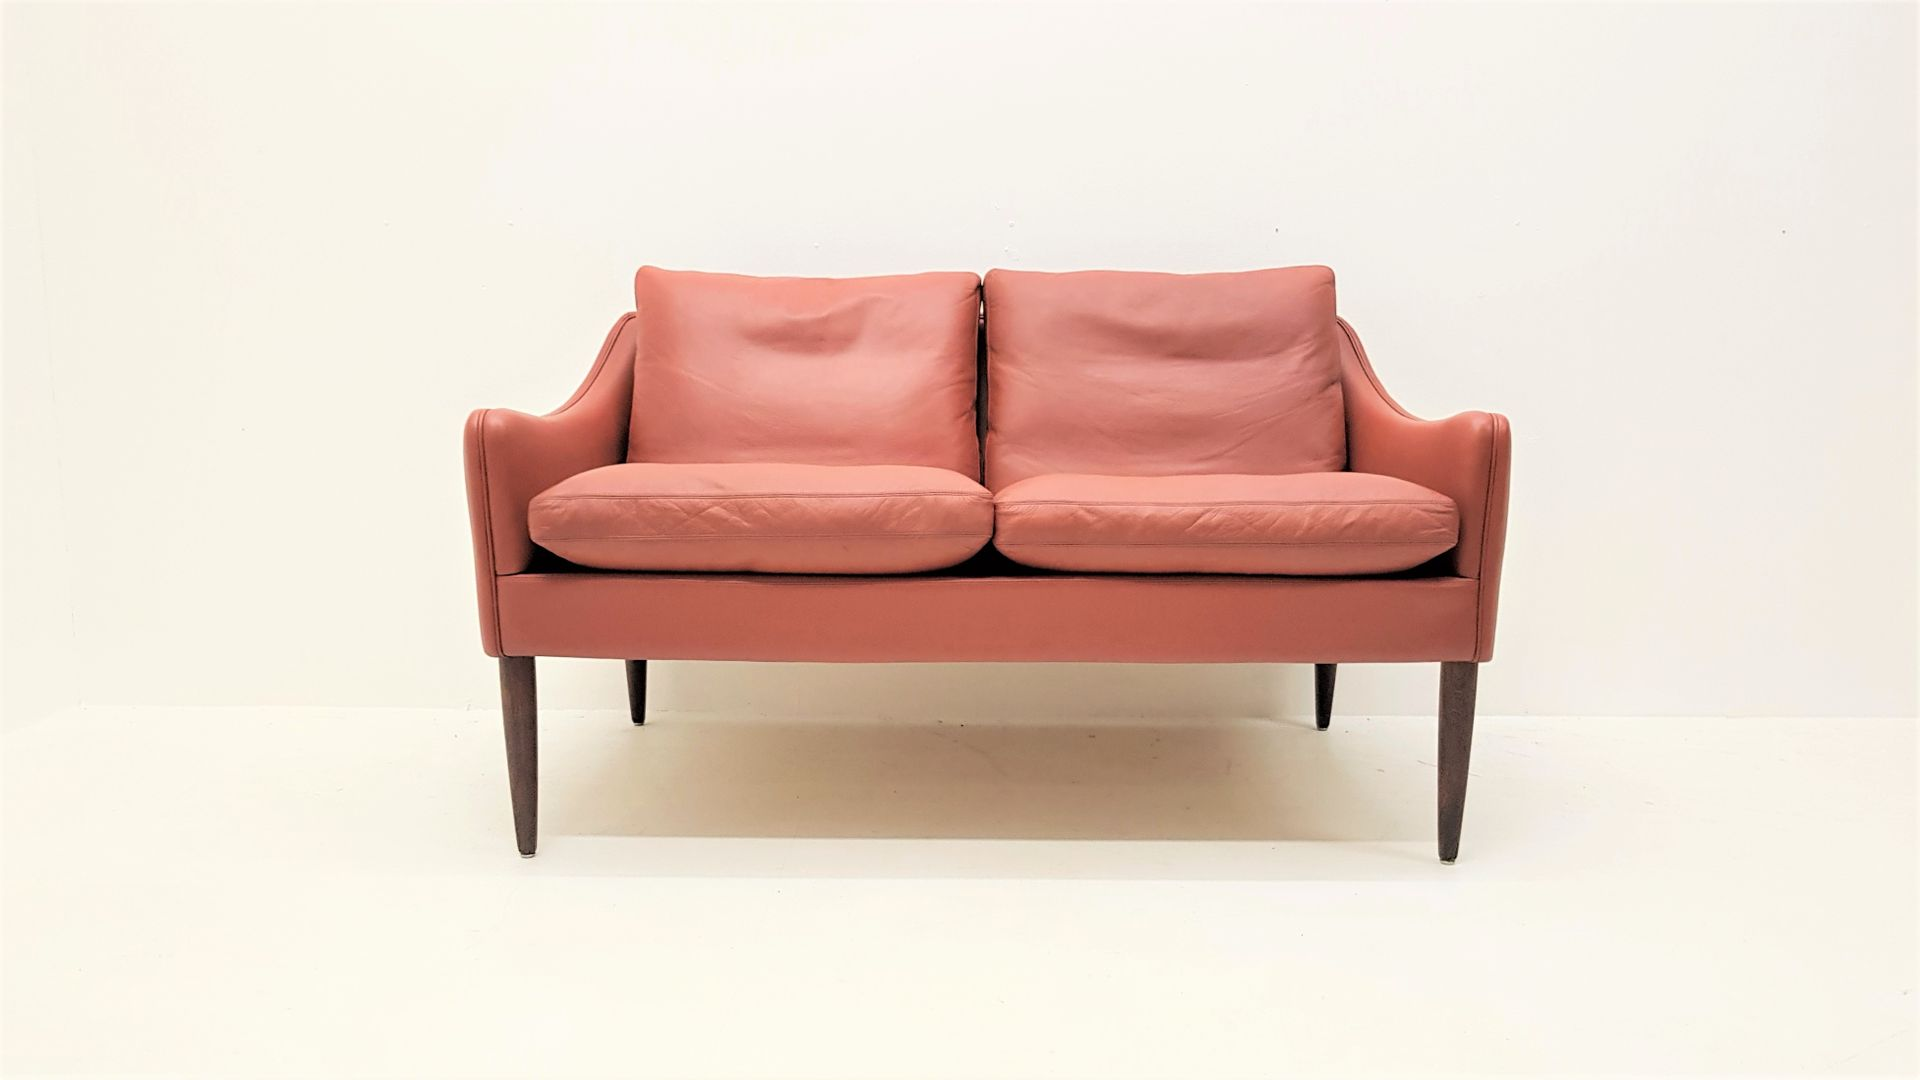 Model 800 2 Two Seater Sofa by Hans Olsen for CS Mobelfabrik